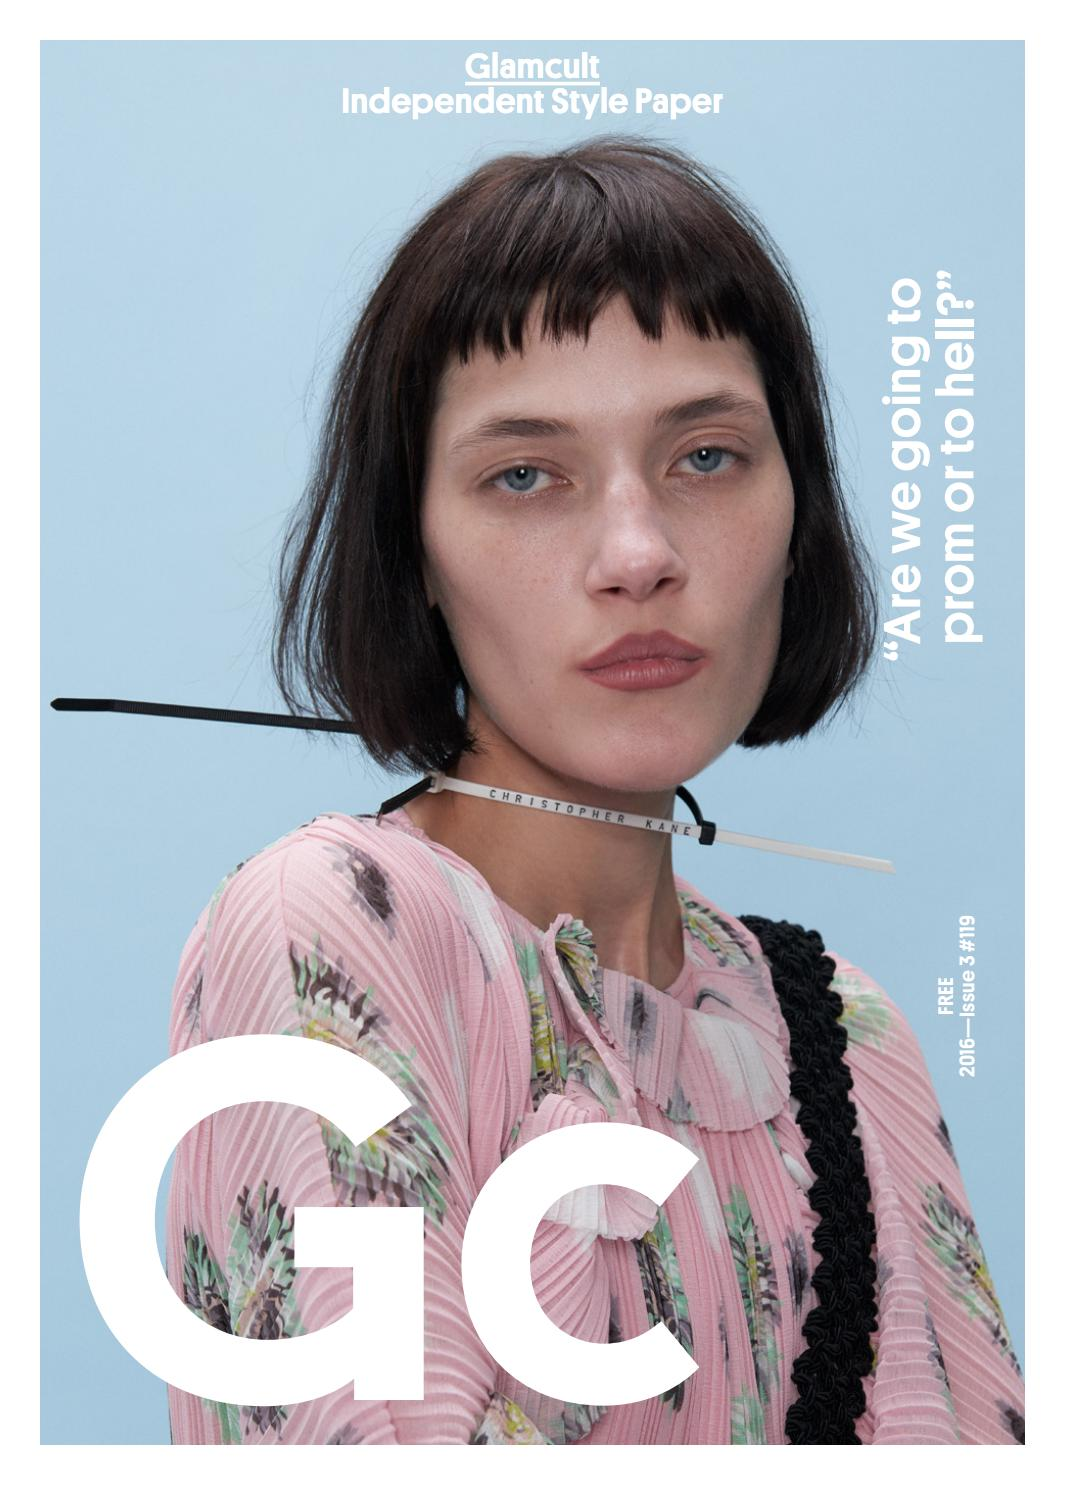 GLAMCULT ISSUE EU By Glamcult Issuu - Cool cars kelsey waters lyrics